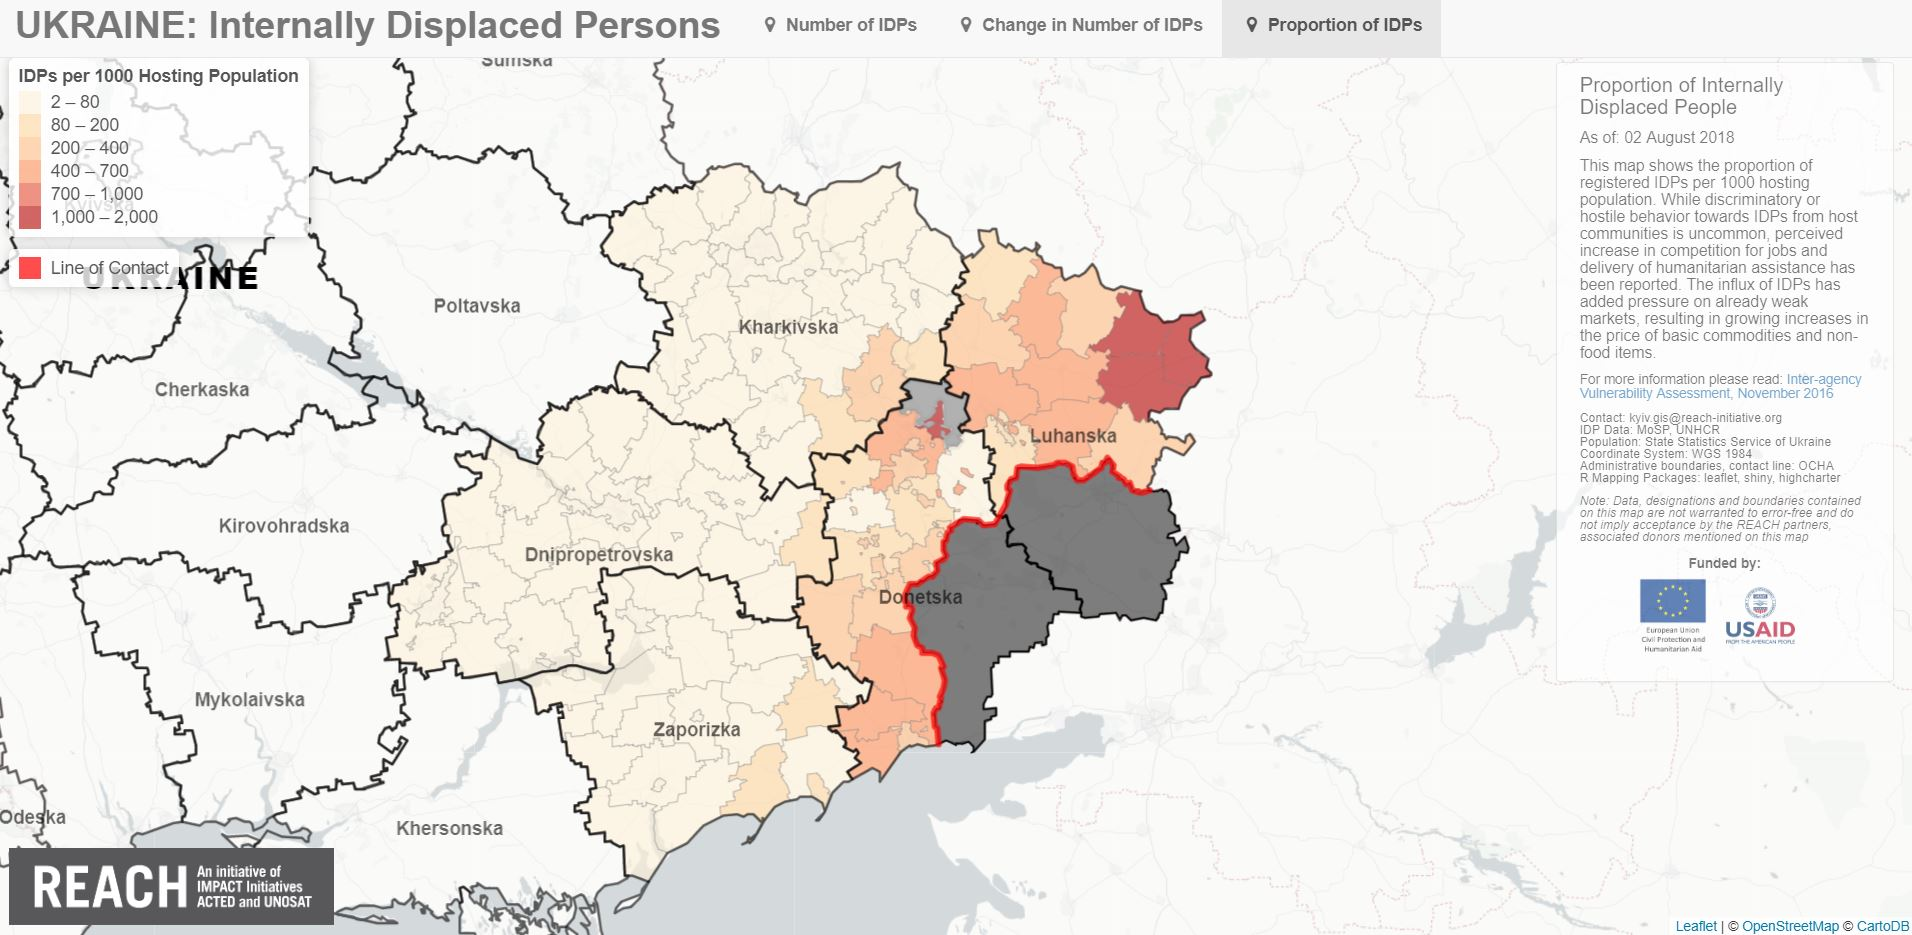 The interactive IDP map on Eastern Ukraine visualizes the proportion of IDPs in regard to host communities - among other things.